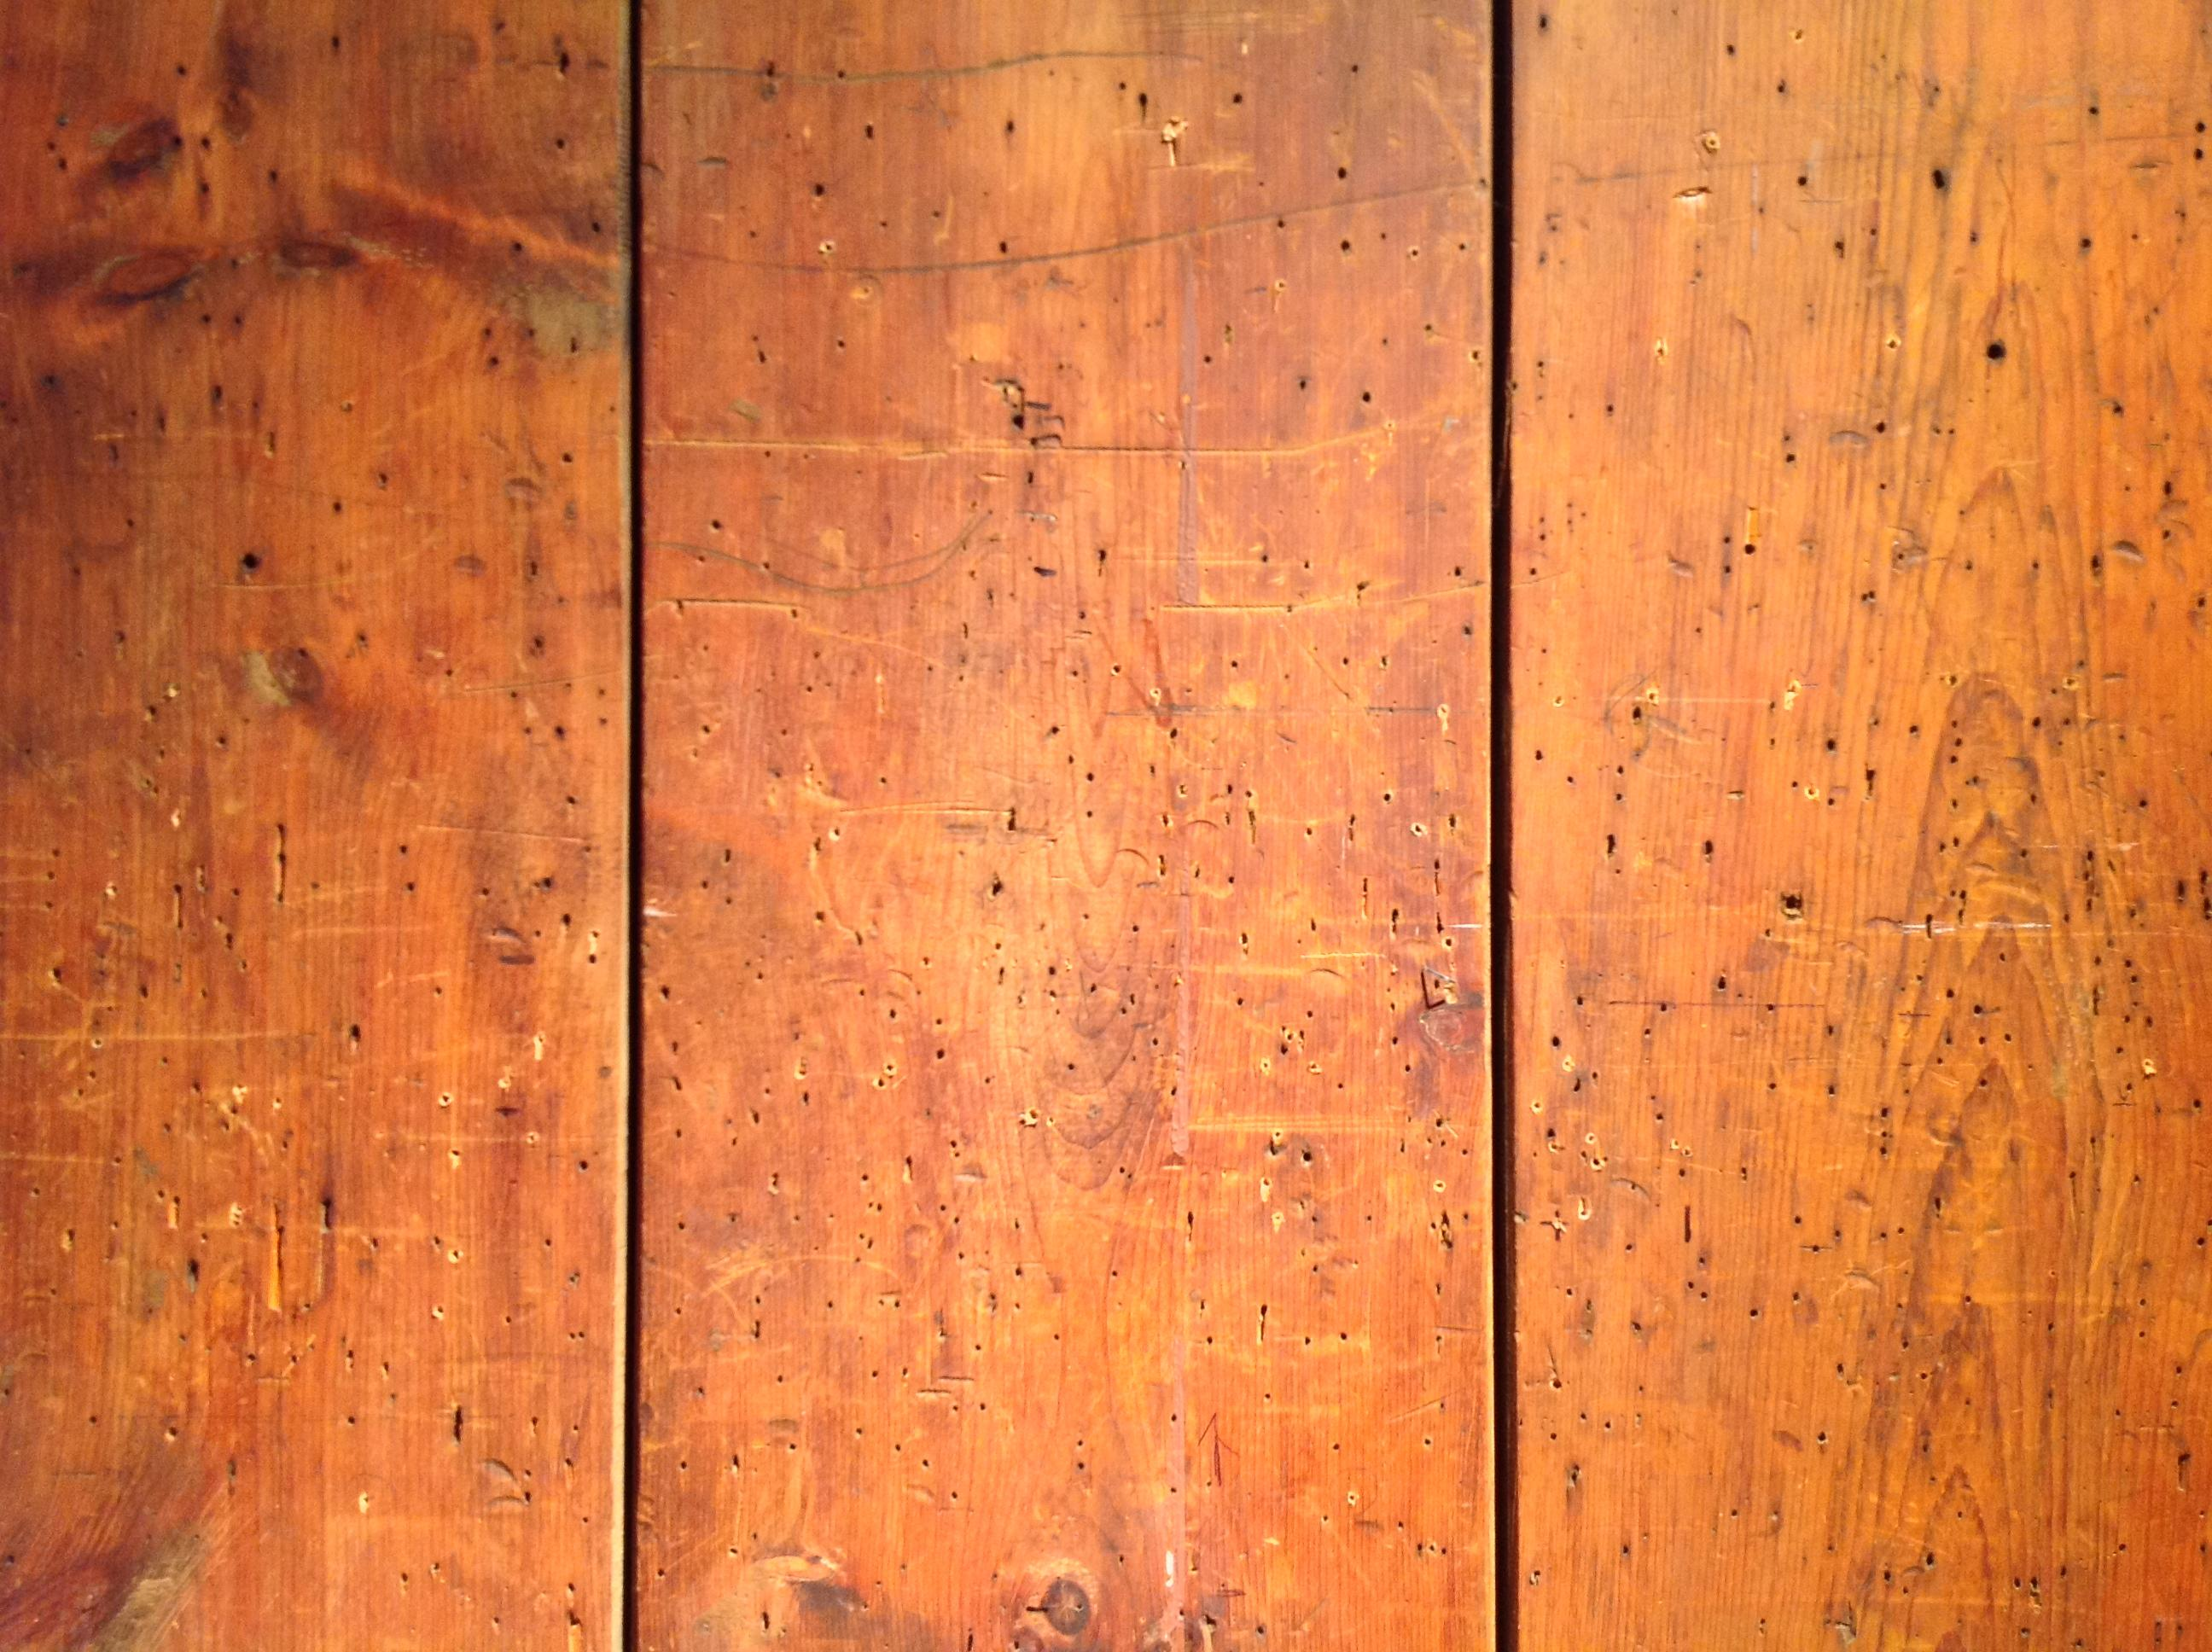 Three wooden boards line next to one another and split the image into thirds. The boards are flecked with hundreds of tiny holes and appear worn. They are a vibrant mixture of brown and orange.